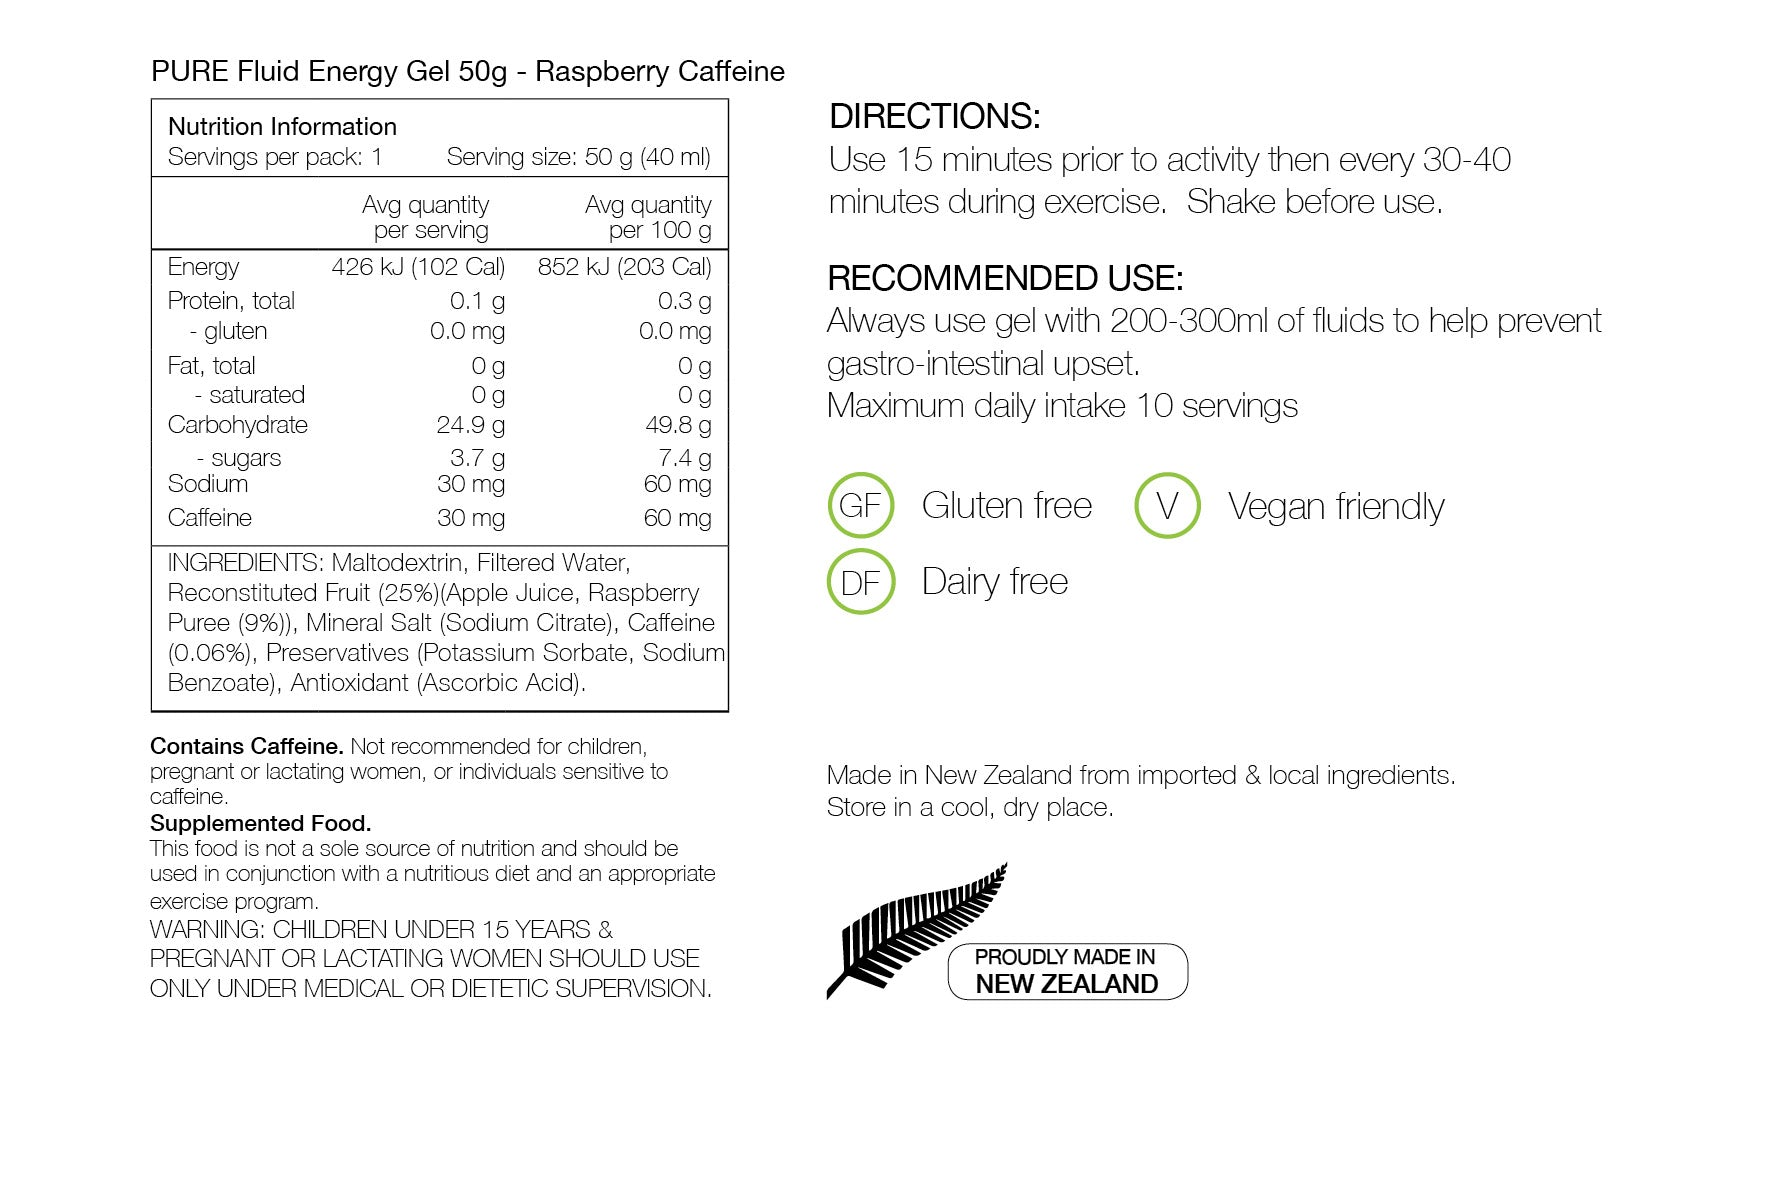 PURE NUTRITION | Fluid Energy Gels 50g - Raspberry Caffeine Nutrition Sheet